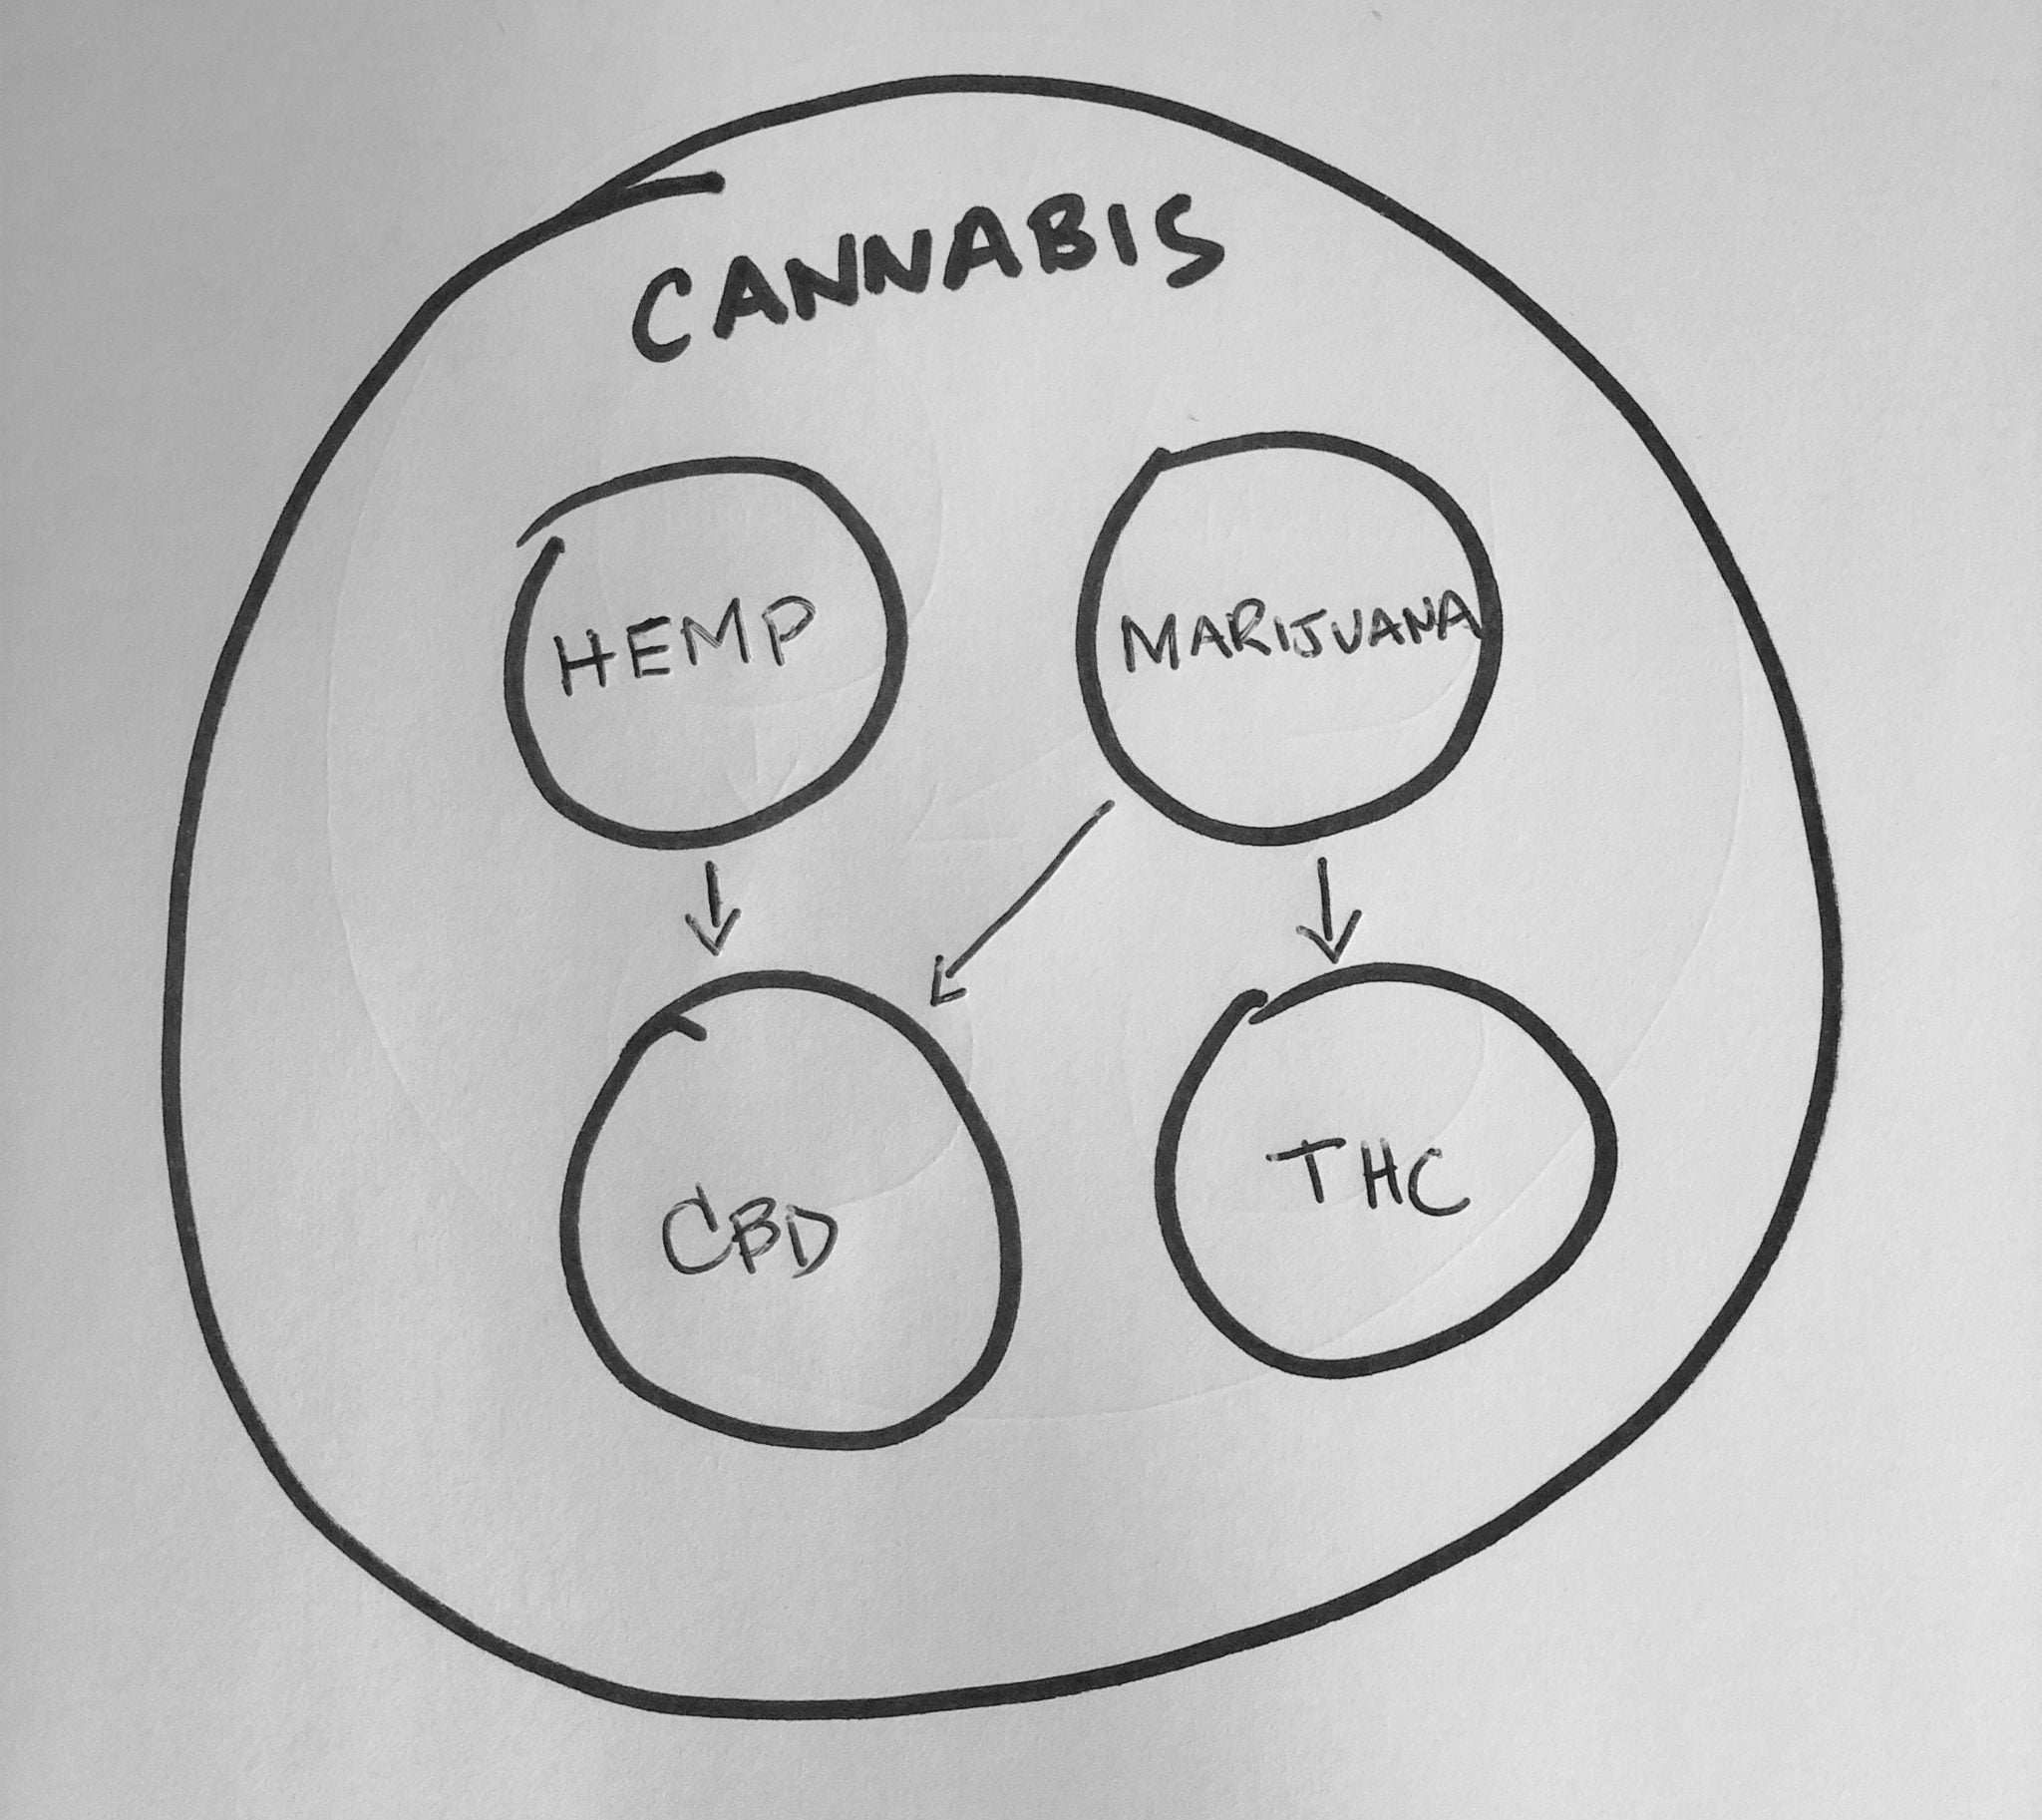 The relationship between cannabis, hemp, and marijuana.